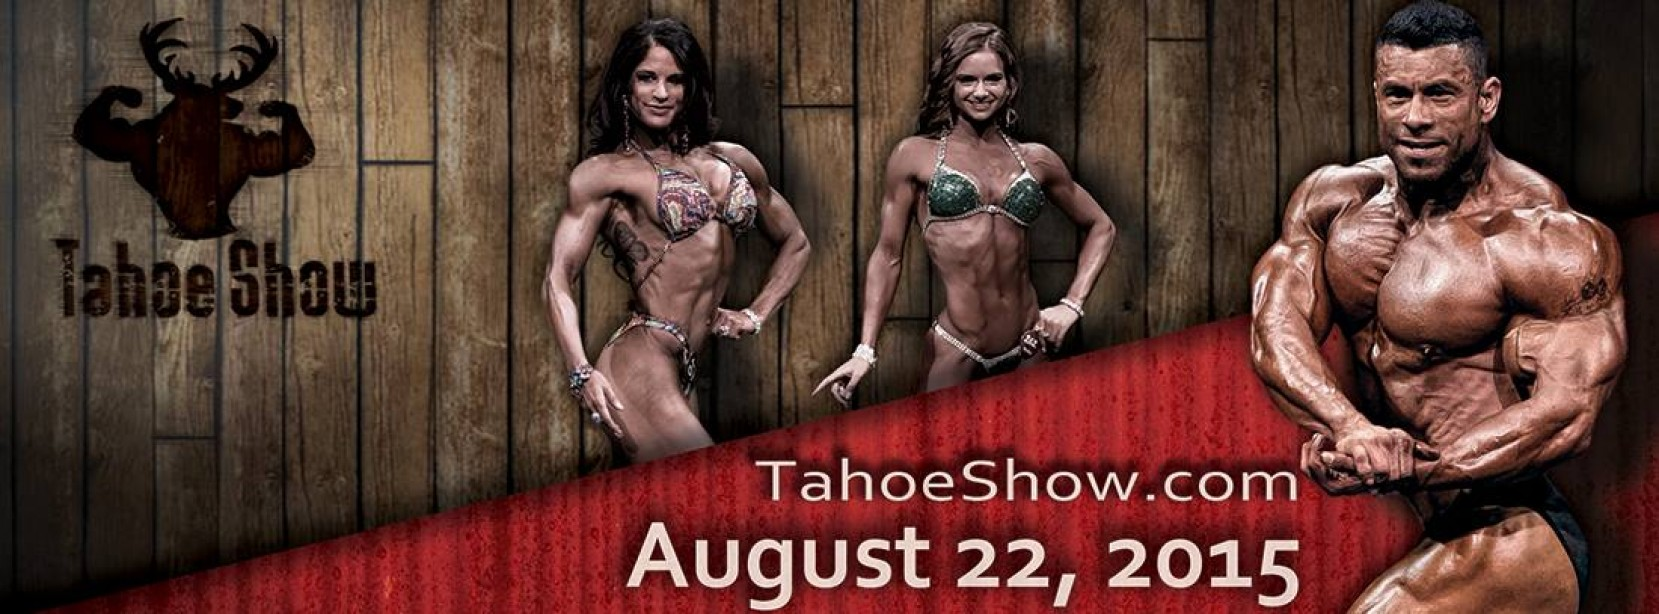 Contenders Vie To Capture Bodybuilding and Fitness Fame